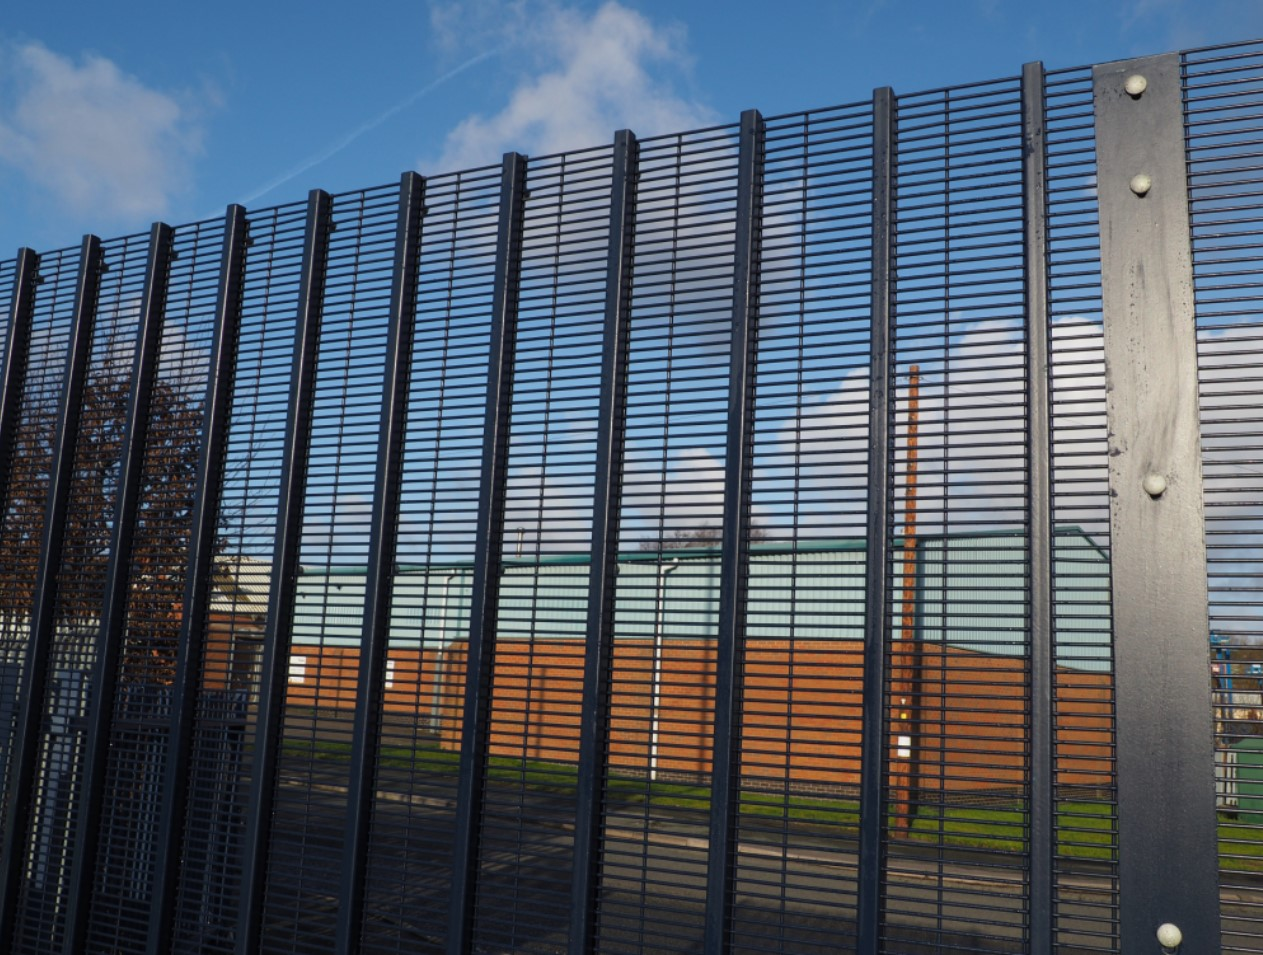 Palisade Vs Mesh Security Fencing For Water Treatment Plants